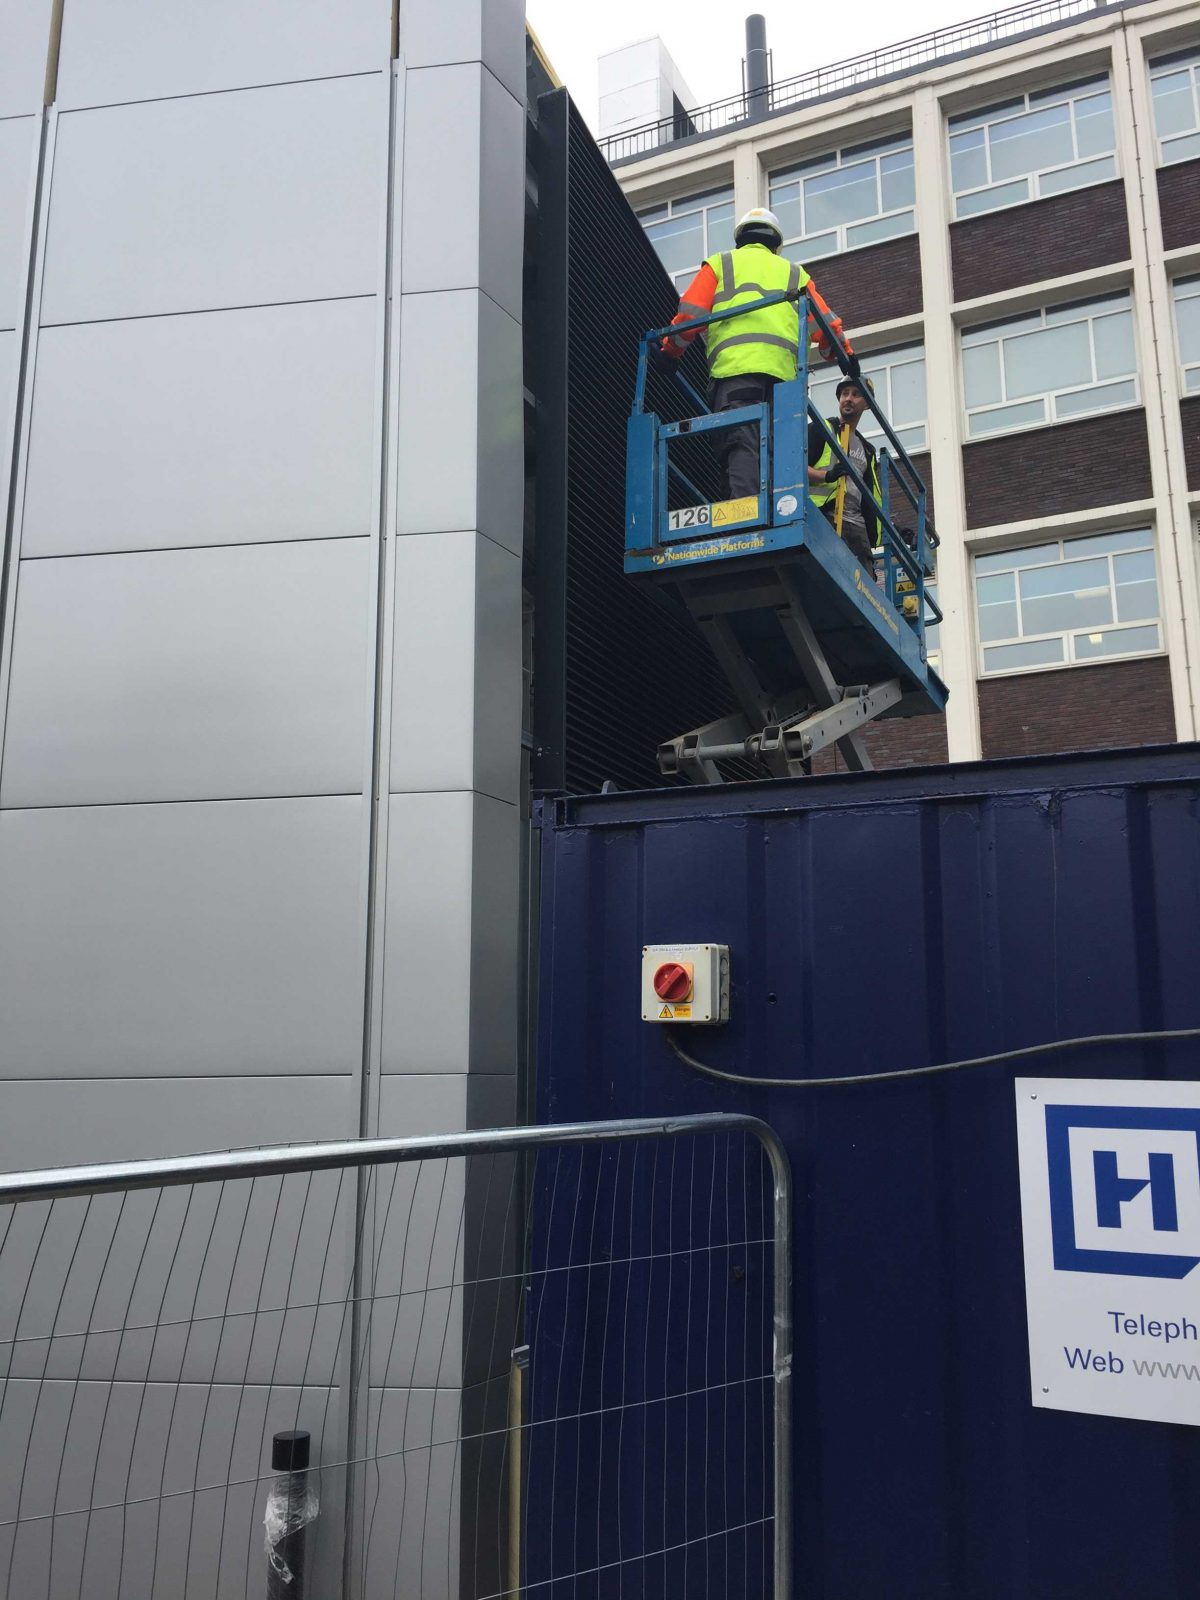 Experience of Working in a Live Environment for University Refurbishments